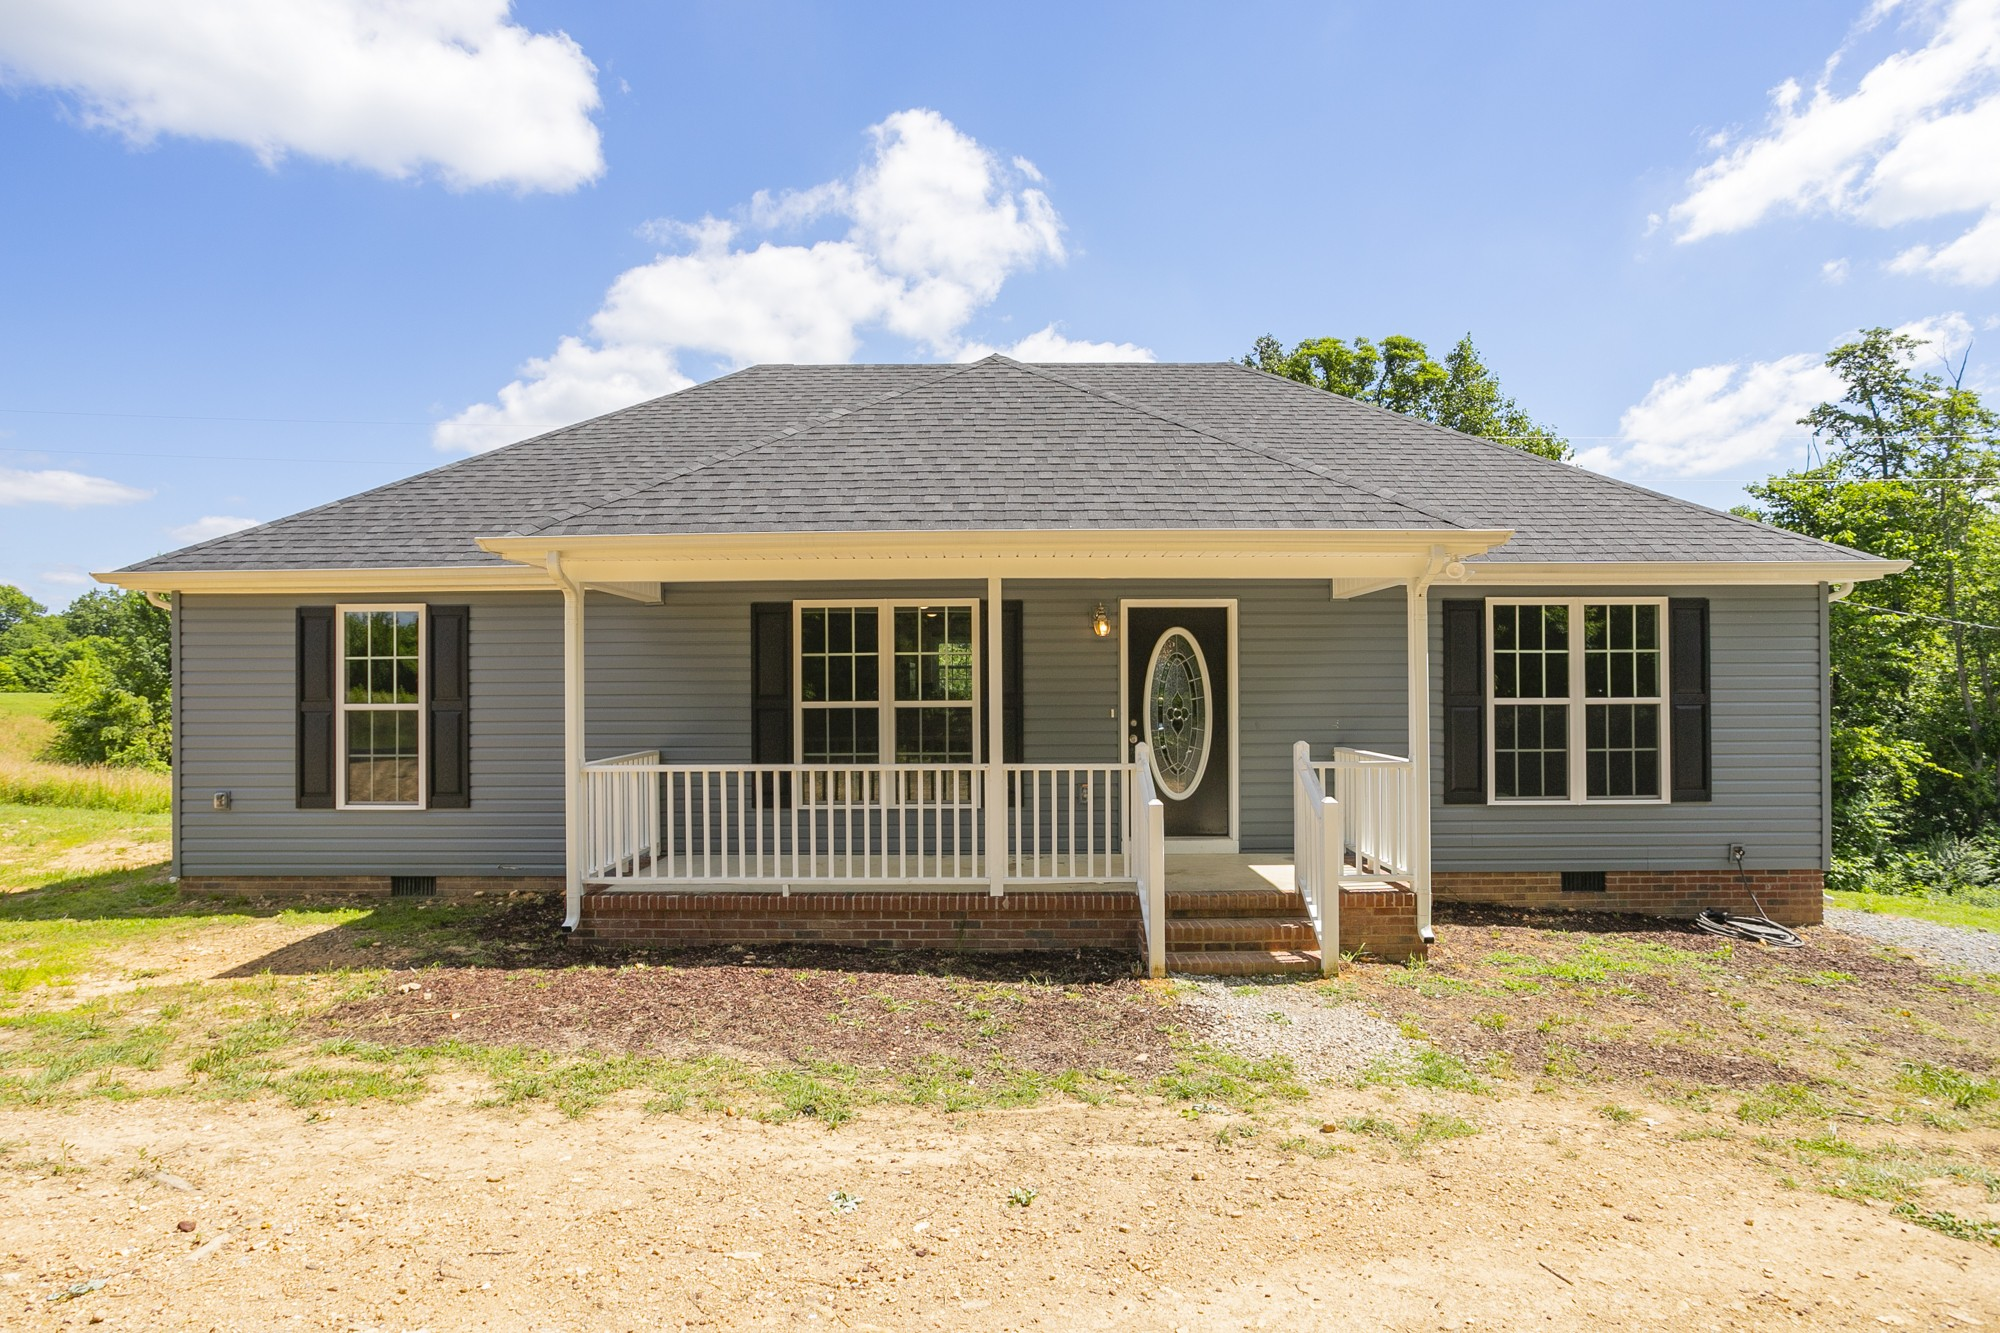 7018 Charity Rd Property Photo - Petersburg, TN real estate listing